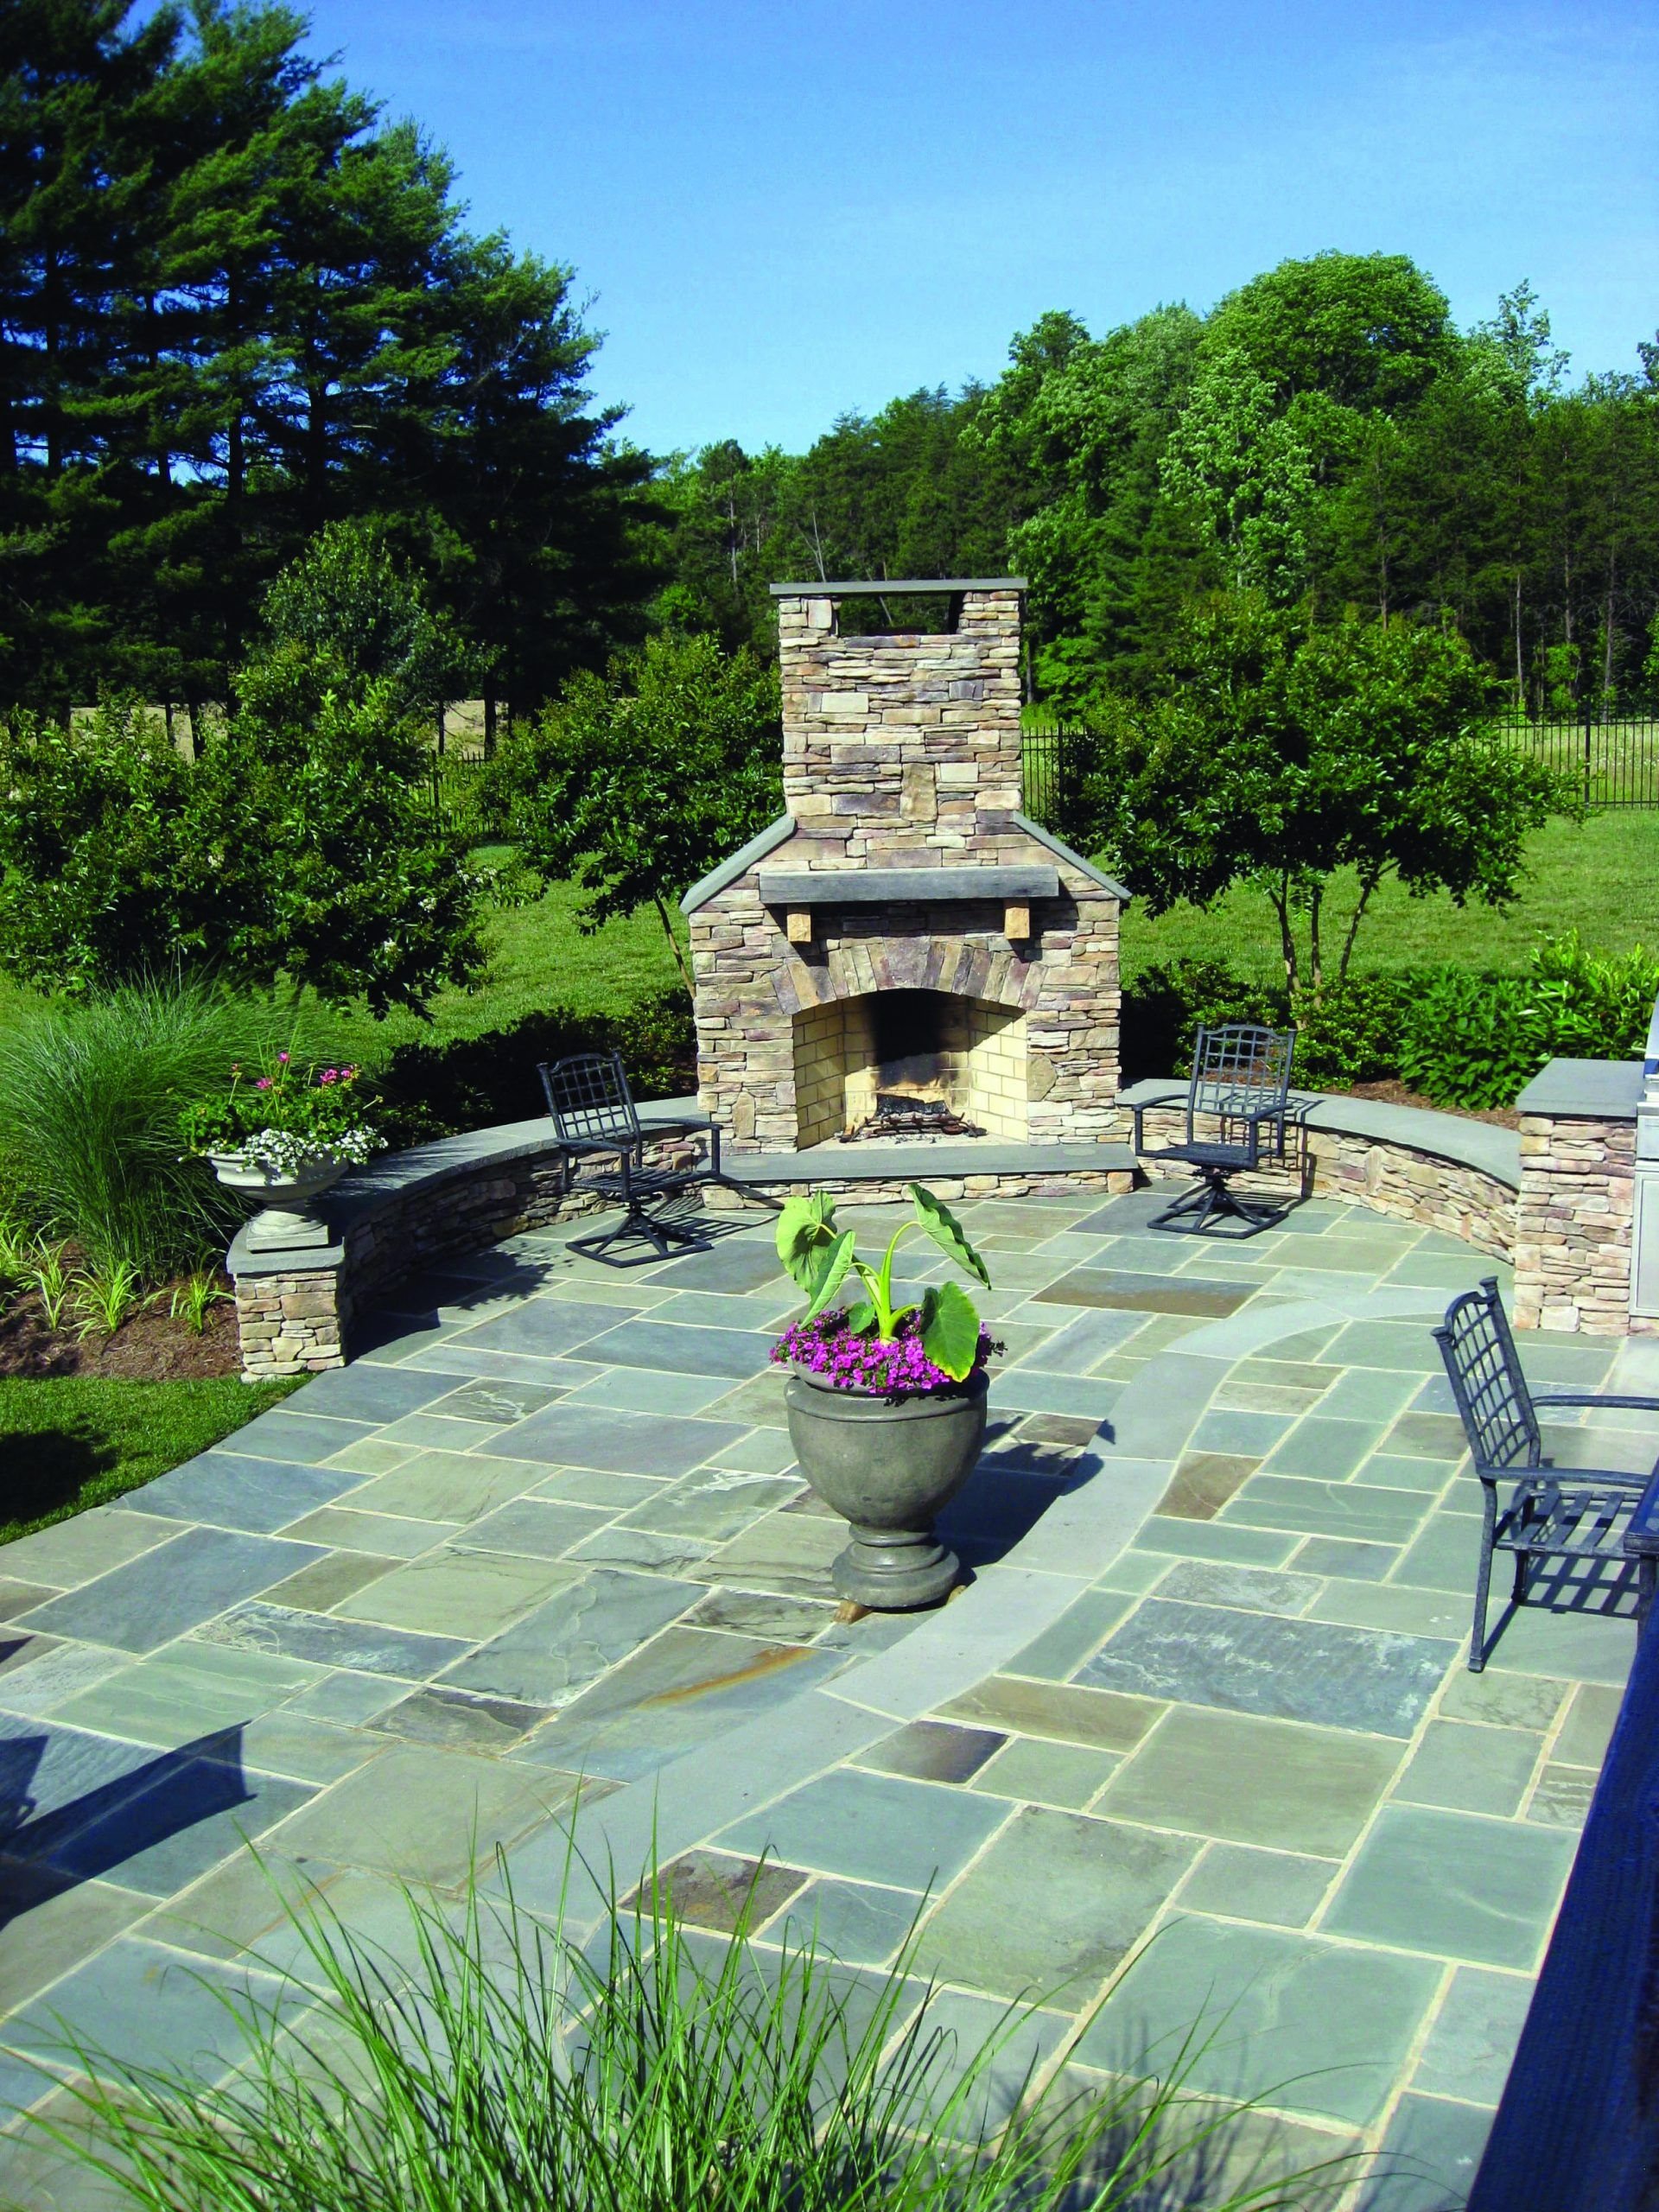 Account Suspended Outdoor Fireplace Patio Outdoor Fireplace Designs Patio Fireplace